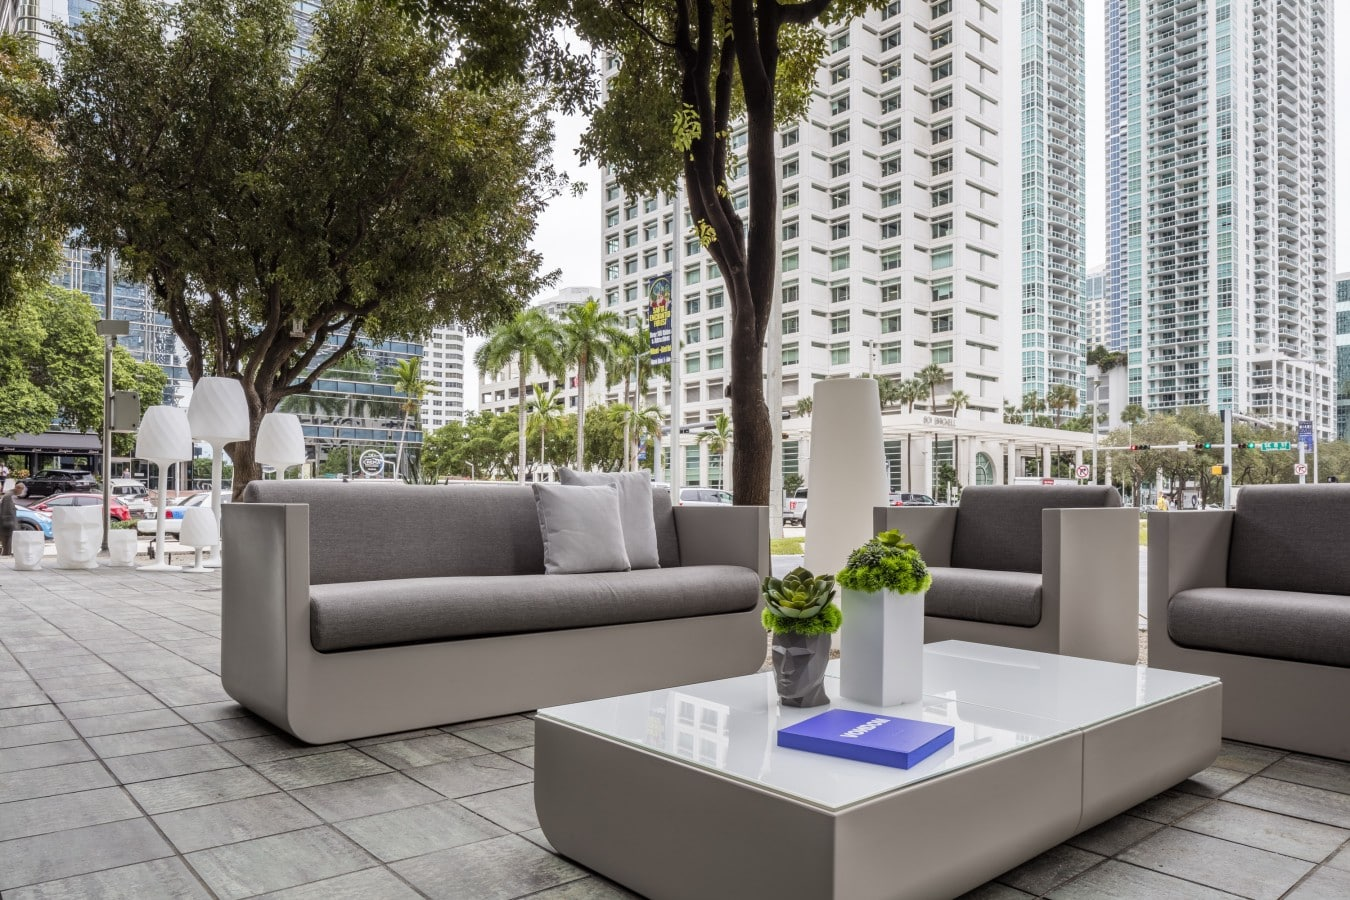 CASACOR MIAMI 2018 735 HDR PREVIEW - CASACOR Miami retorna ao Brickell City Centre